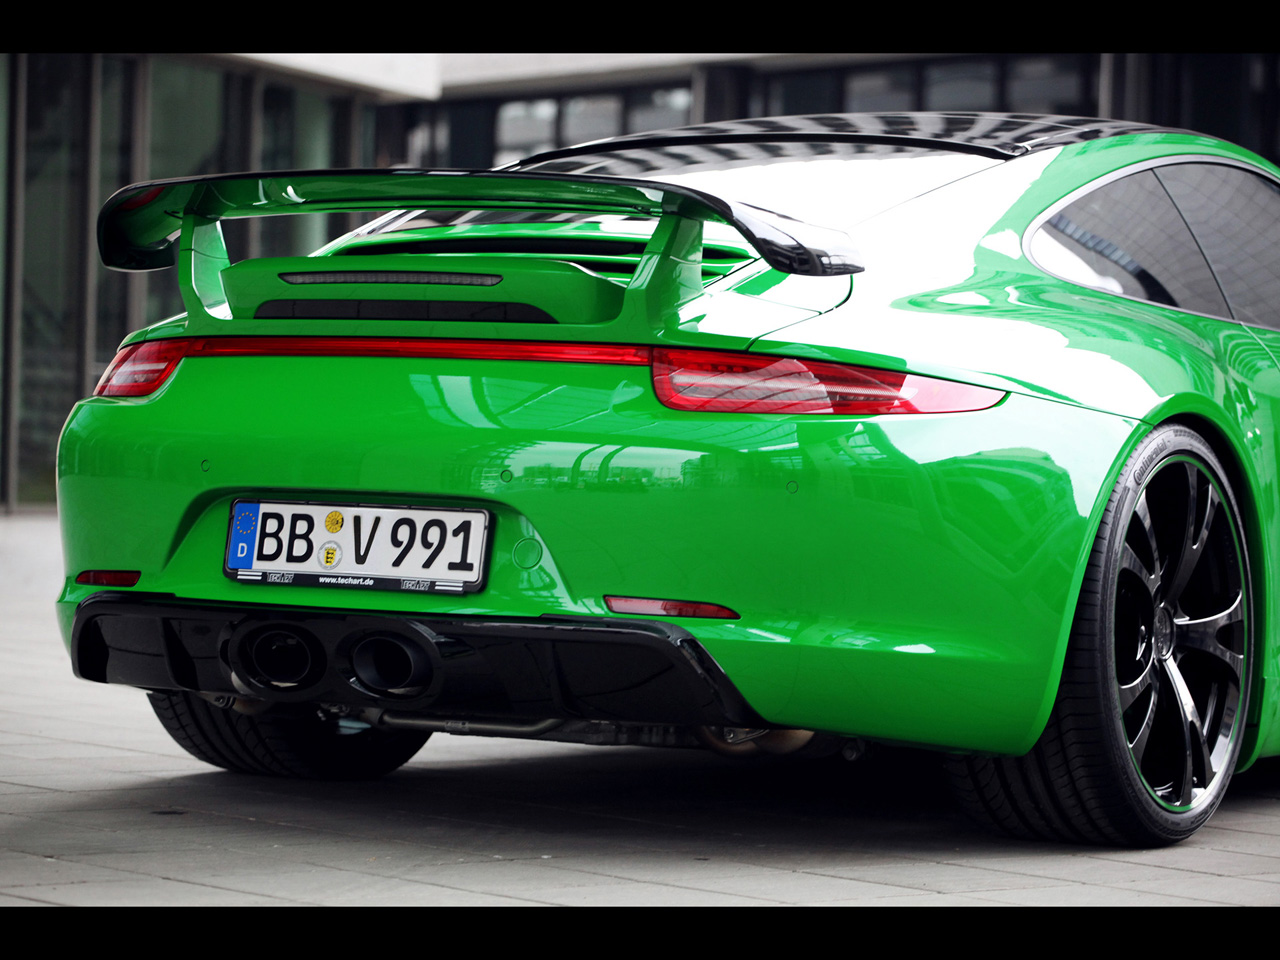 Car wallpapers in high resolution from all automotive - Porsche 911 carrera s wallpaper ...